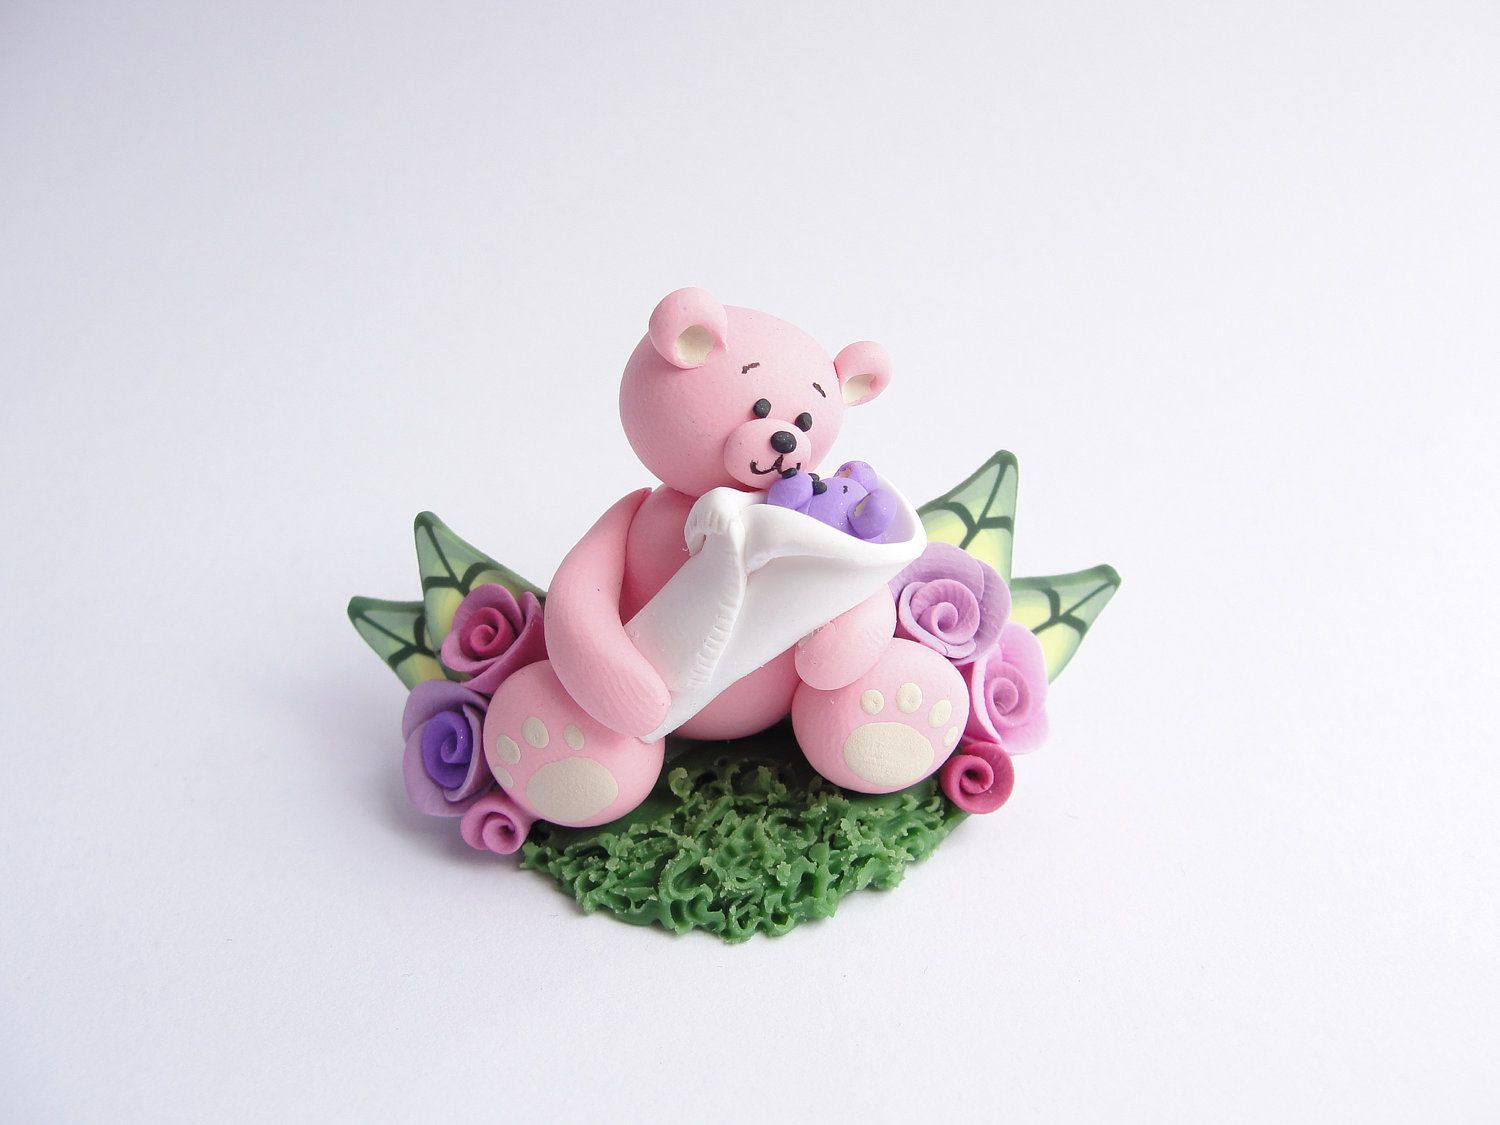 plorym clay baby | Reserved for Lora by fizzyclaret on Etsy